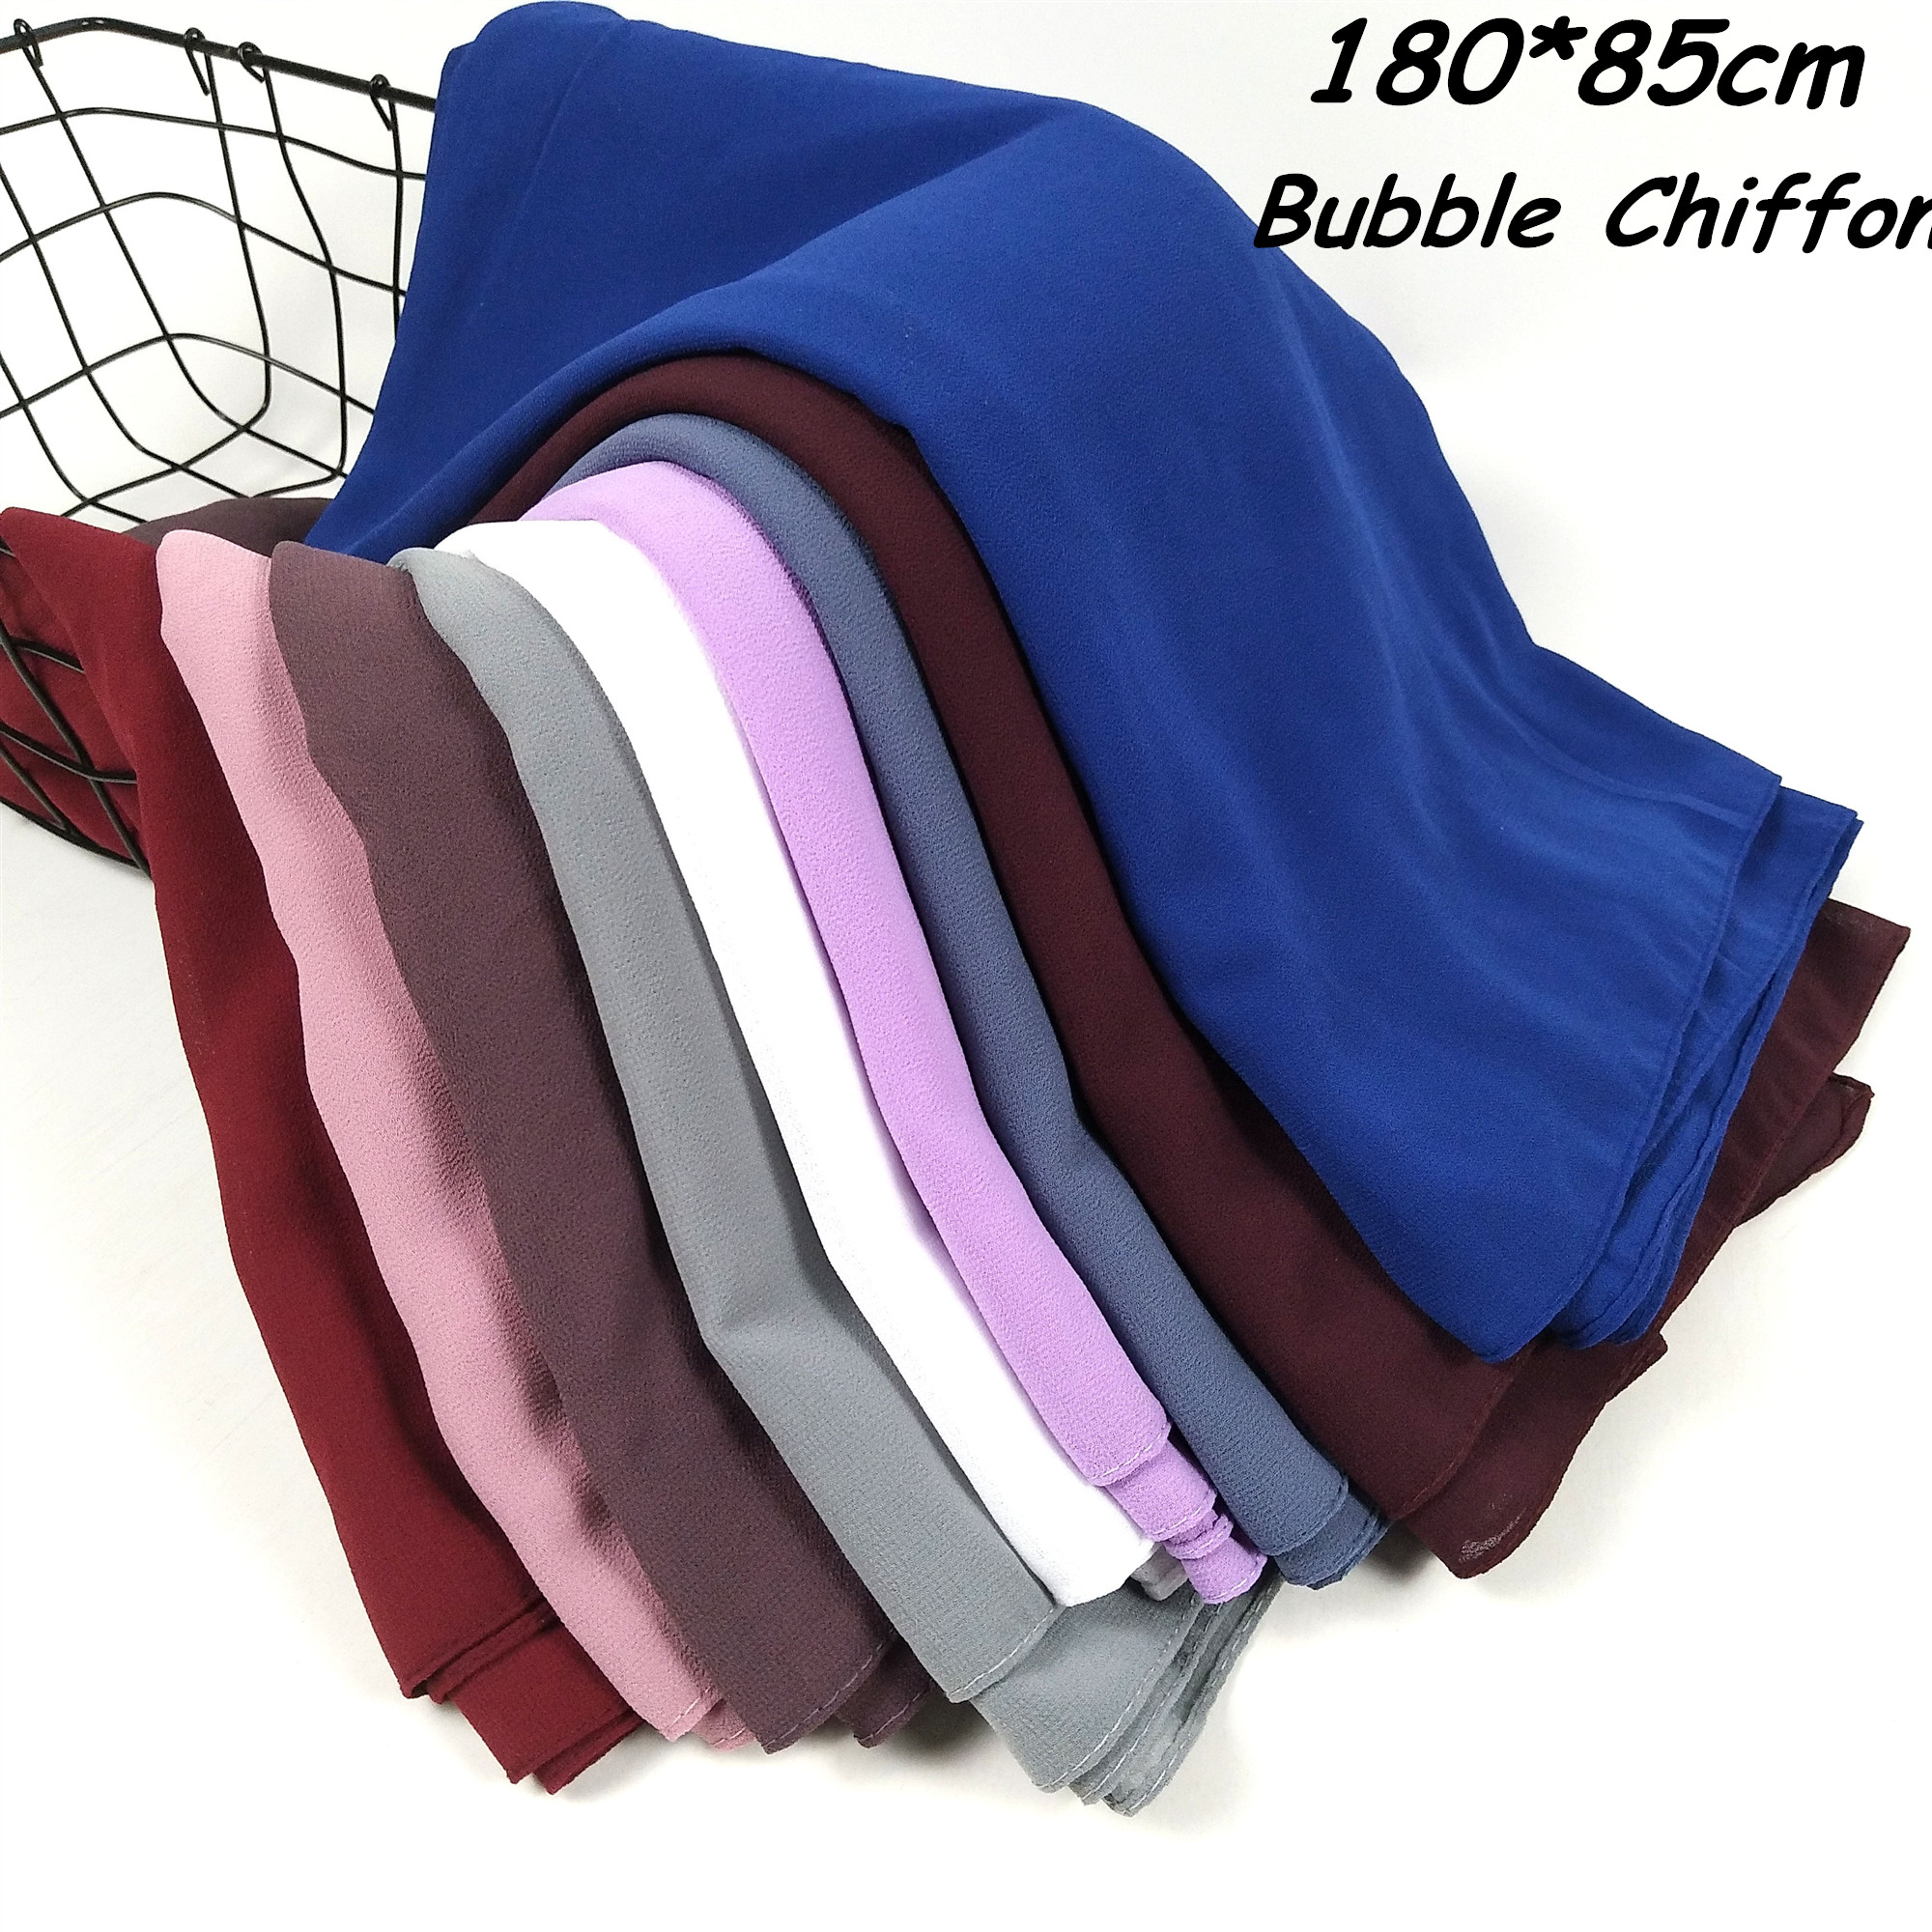 k9 1  Big size women High quality bubble chiffon printe solid color shawls hijab winter muslim  scarves/scarf 180*85cm-in Women's Scarves from Apparel Accessories